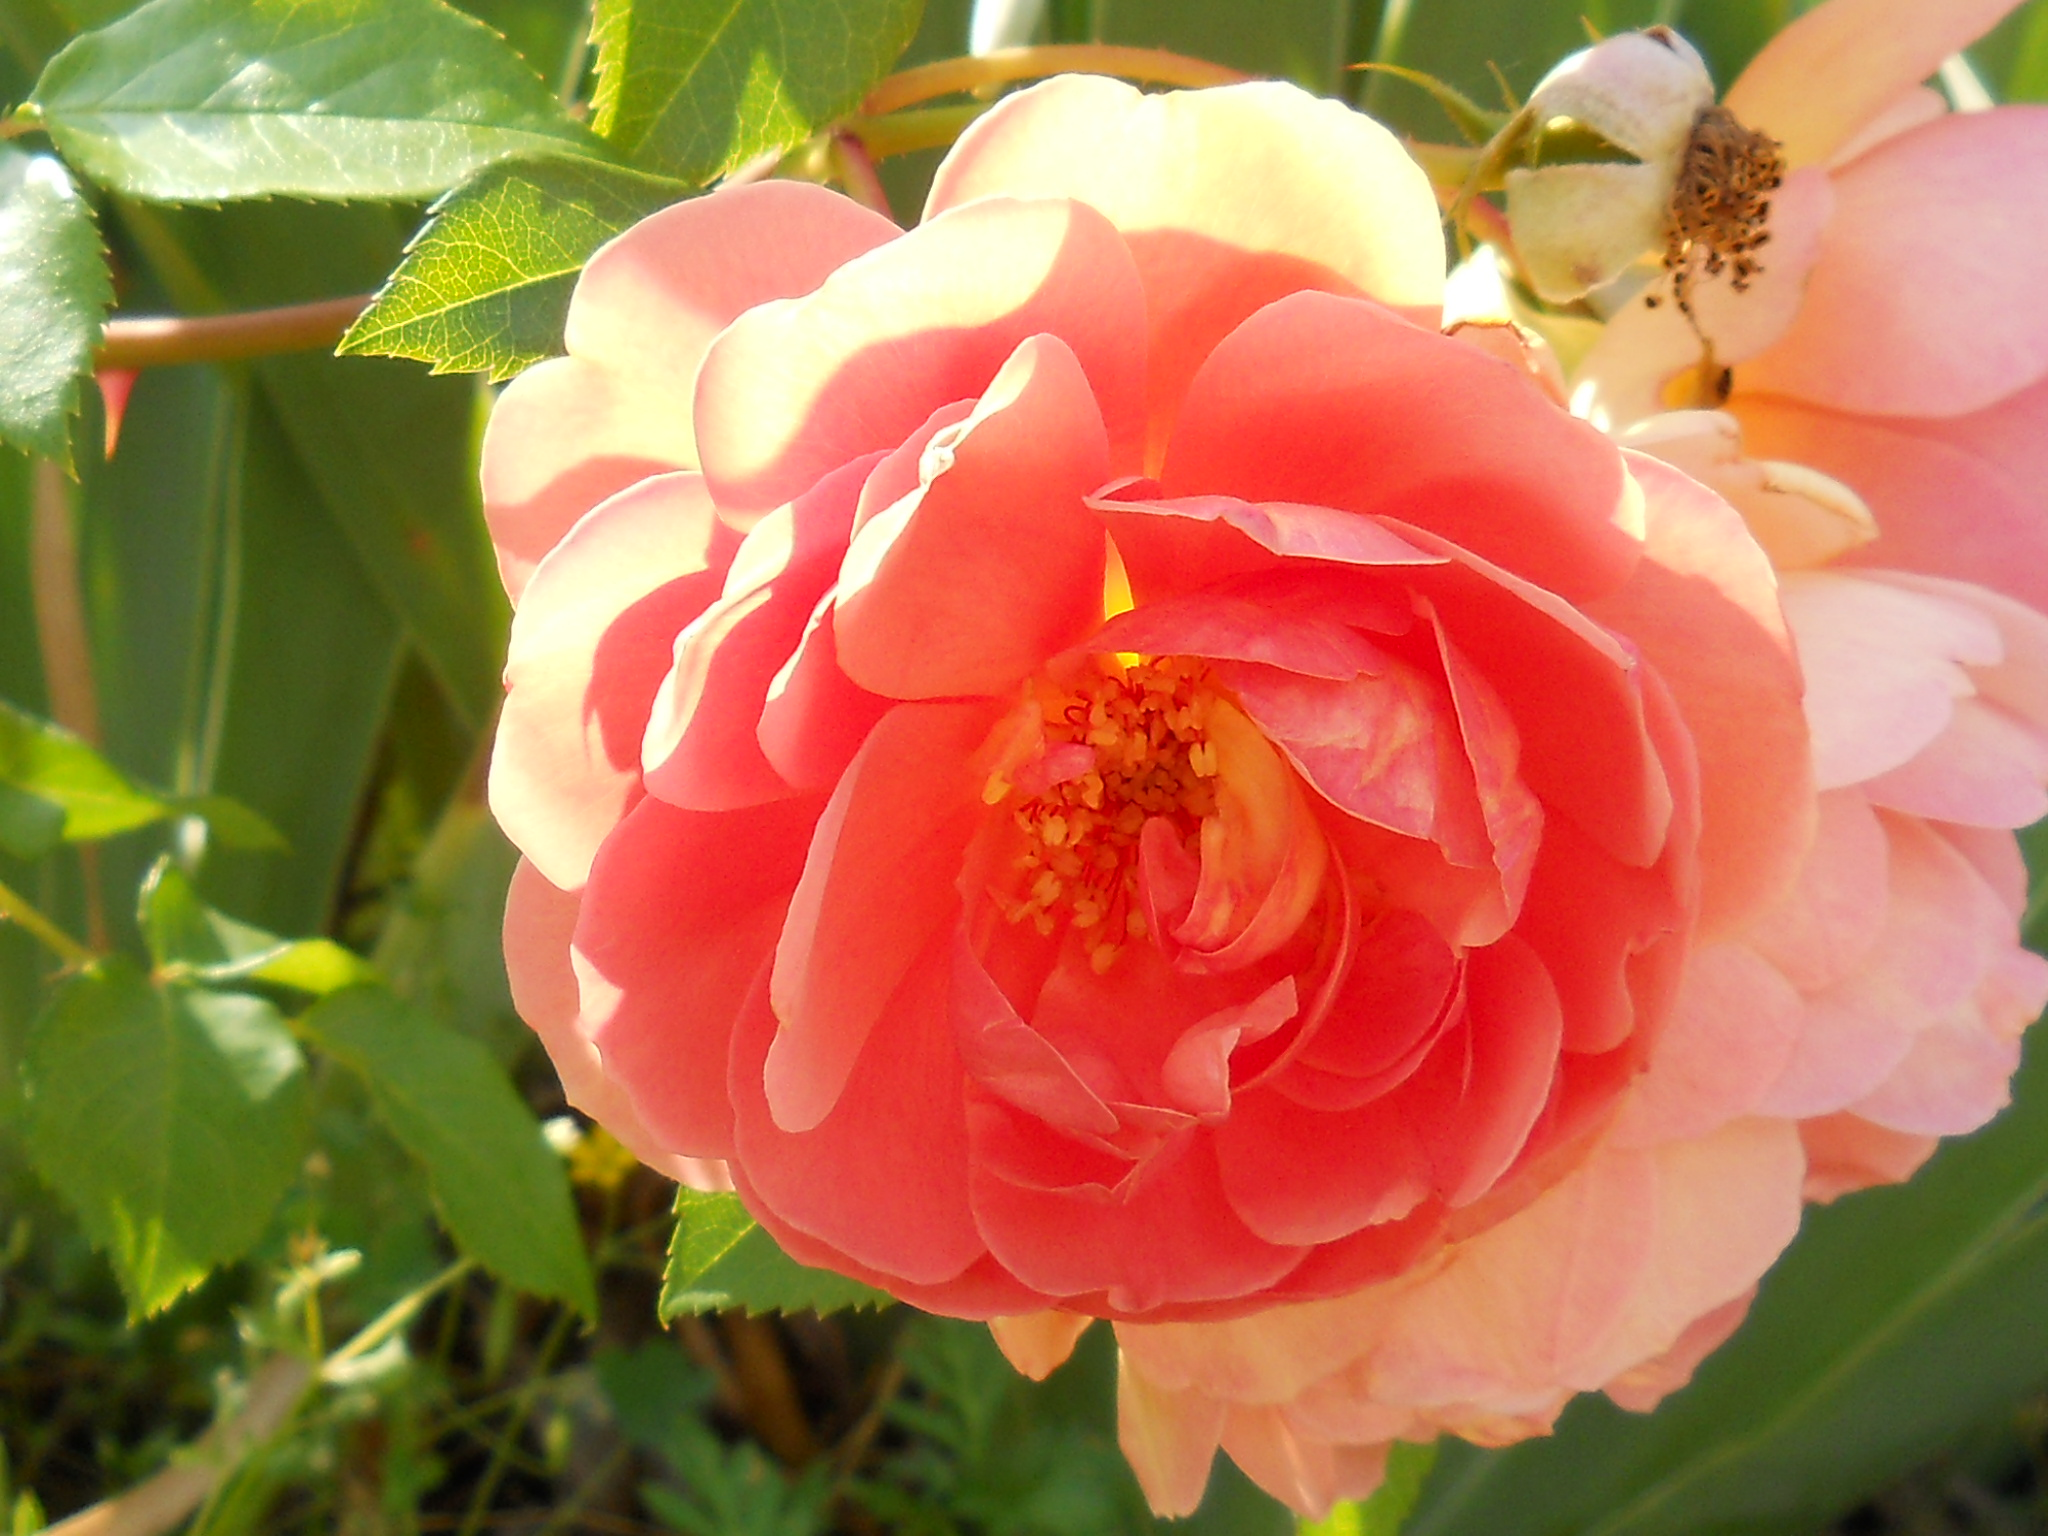 A rose is a rosea very beautiful rose nourys happy place well enough of me and my bad hair moment come to find out i kind of like it now it could be better maybe next time izmirmasajfo